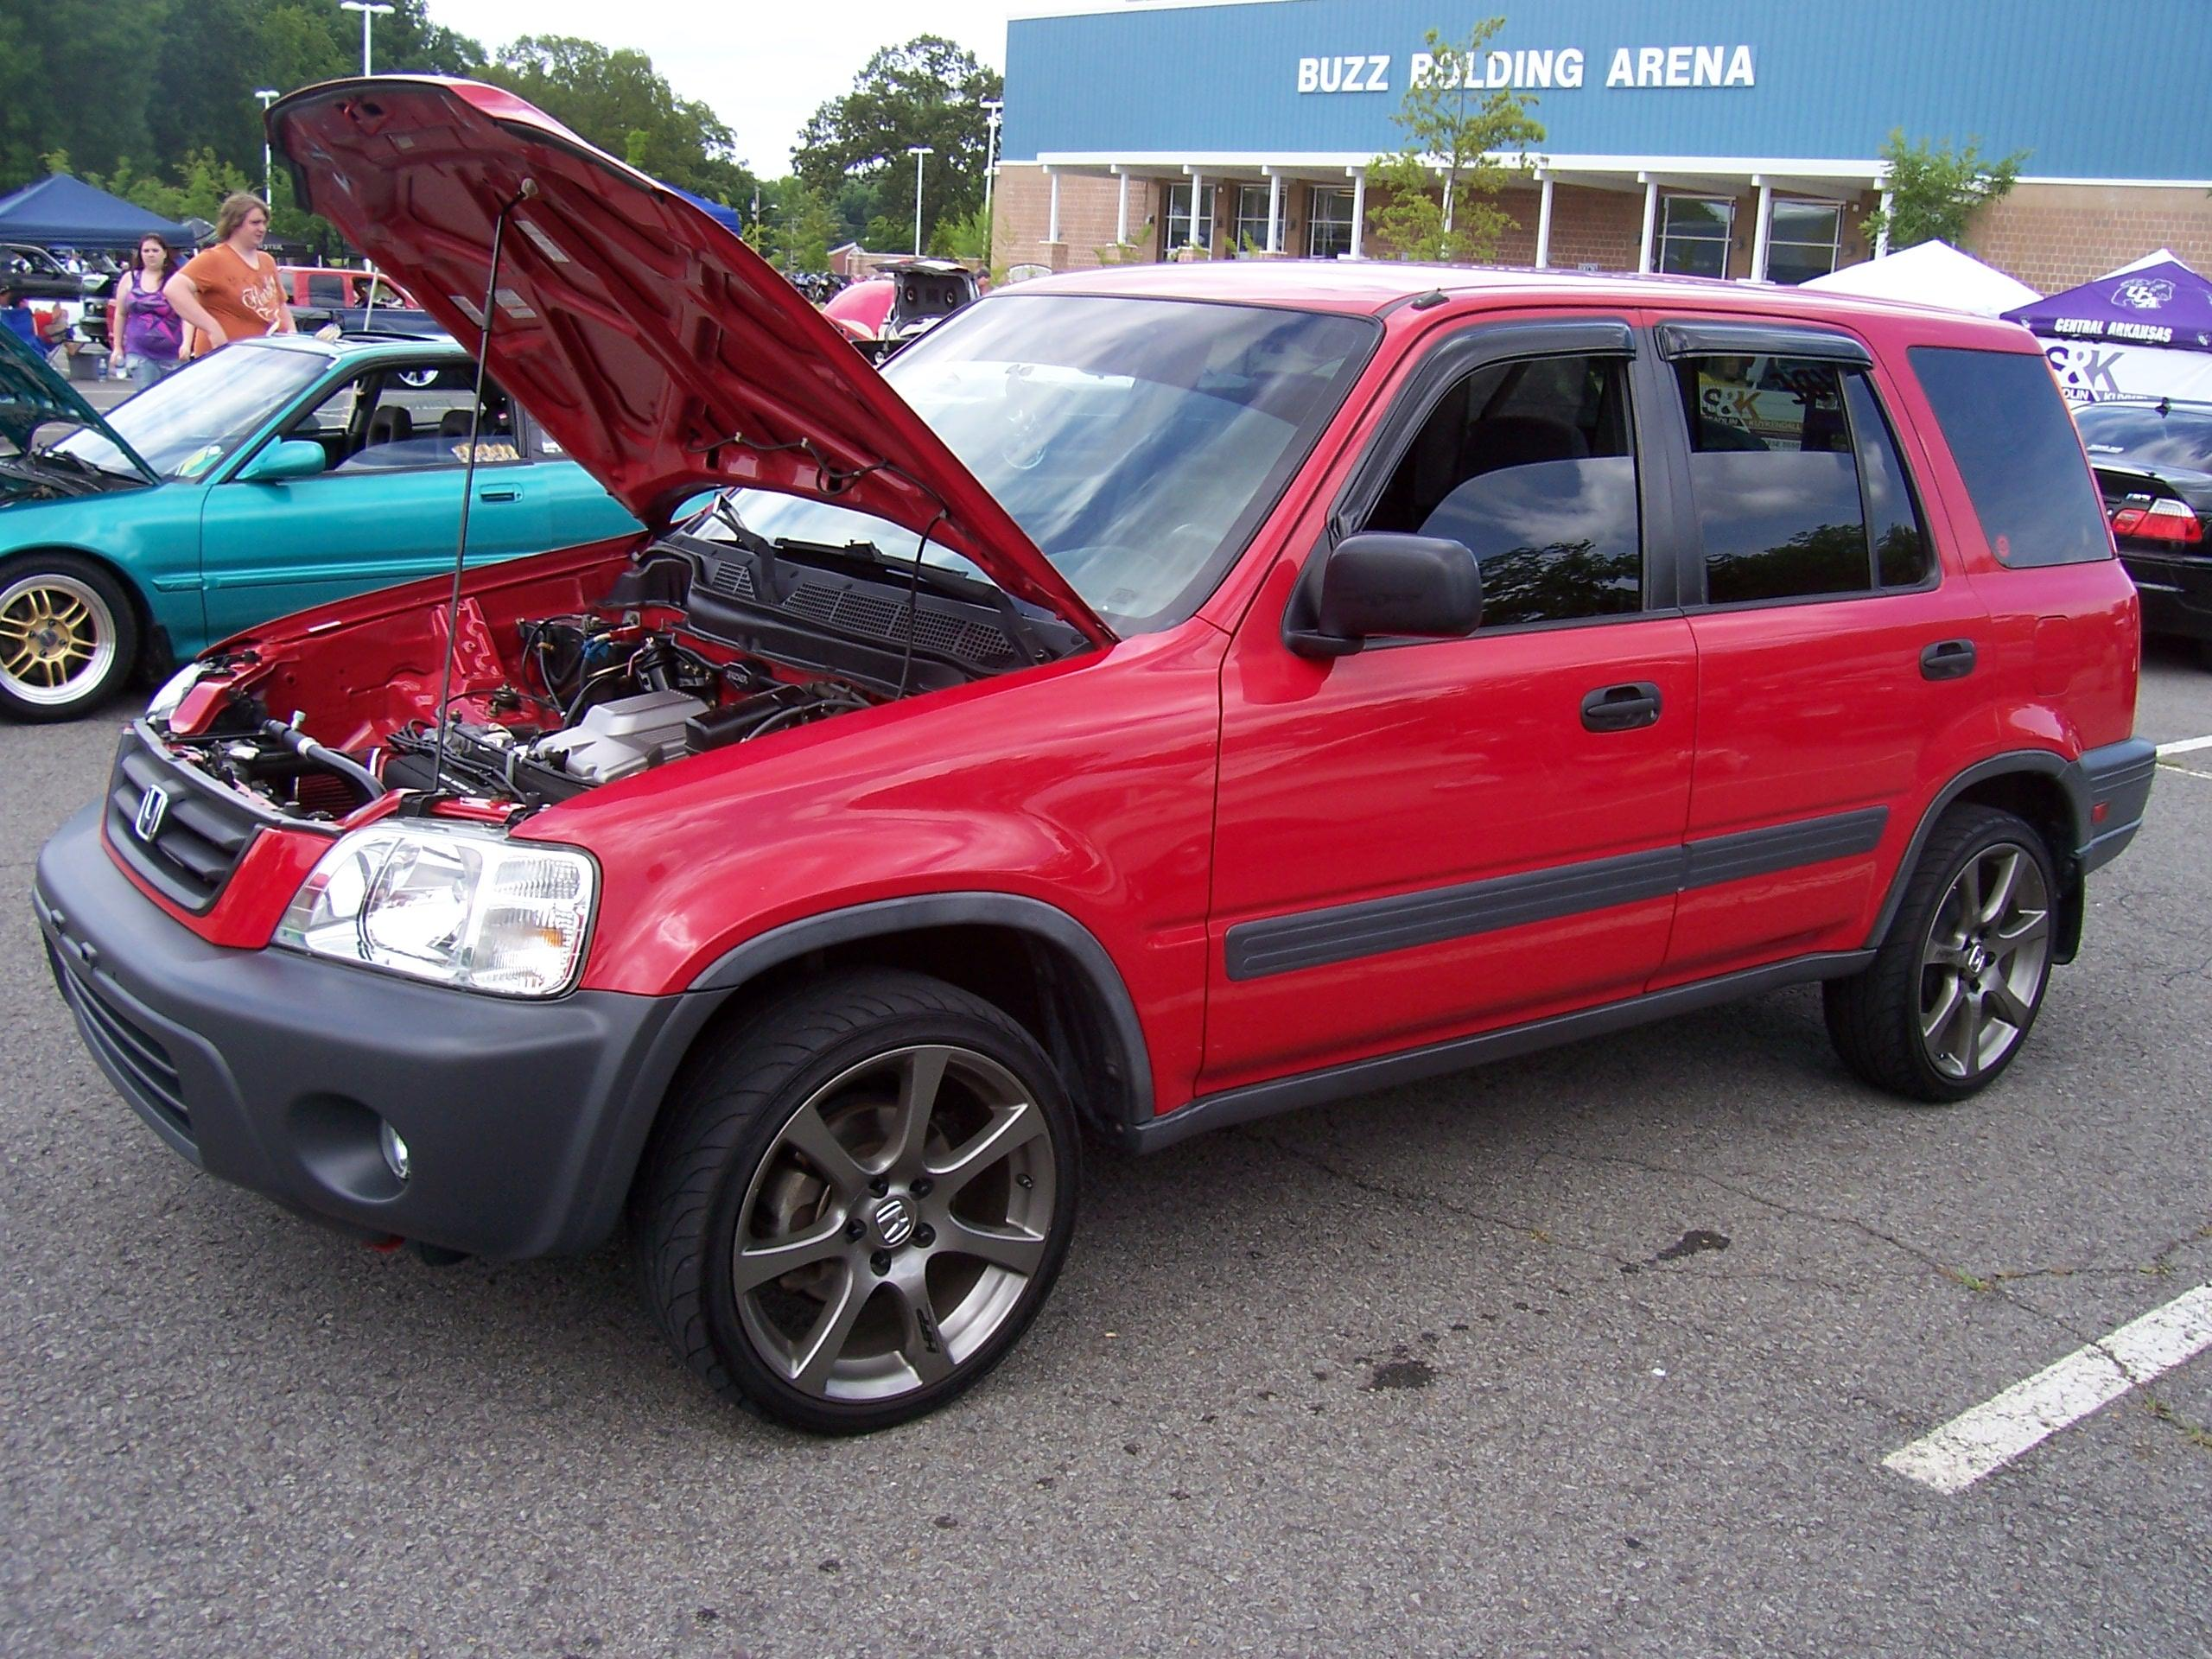 Lowered Honda Crv 2001 Honda cr v Lowered 18hfp